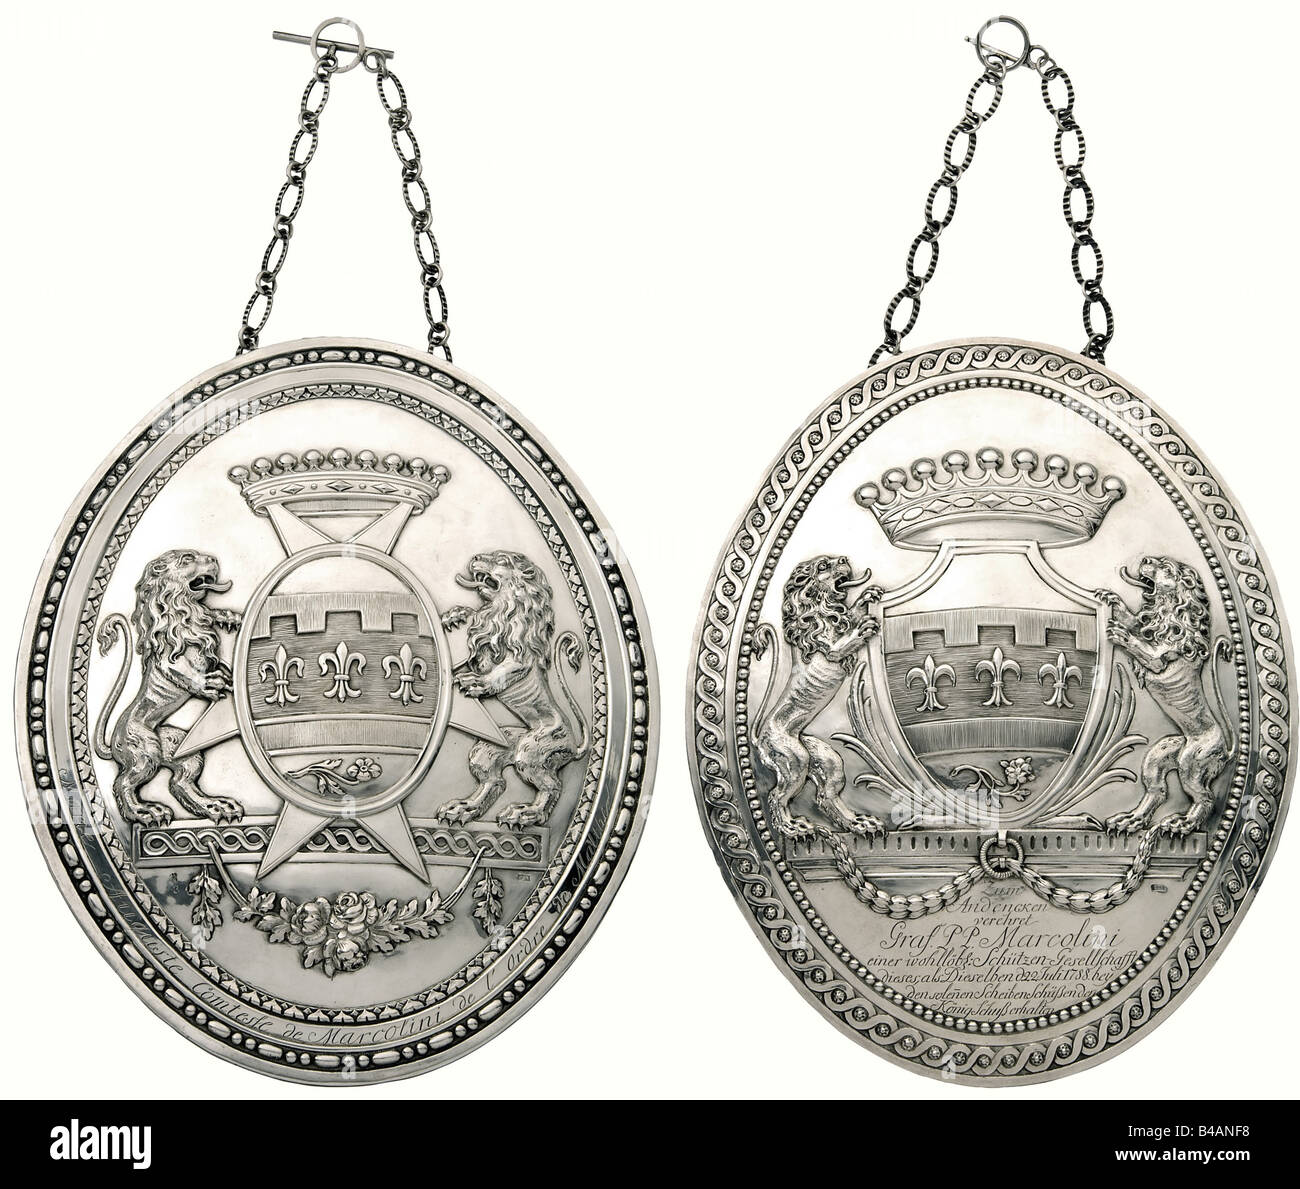 Count Camillo Marcolini and Countess Marie Auguste Marcolini - two silver plaques bearing coats of arms, Friedrich Stock Photo